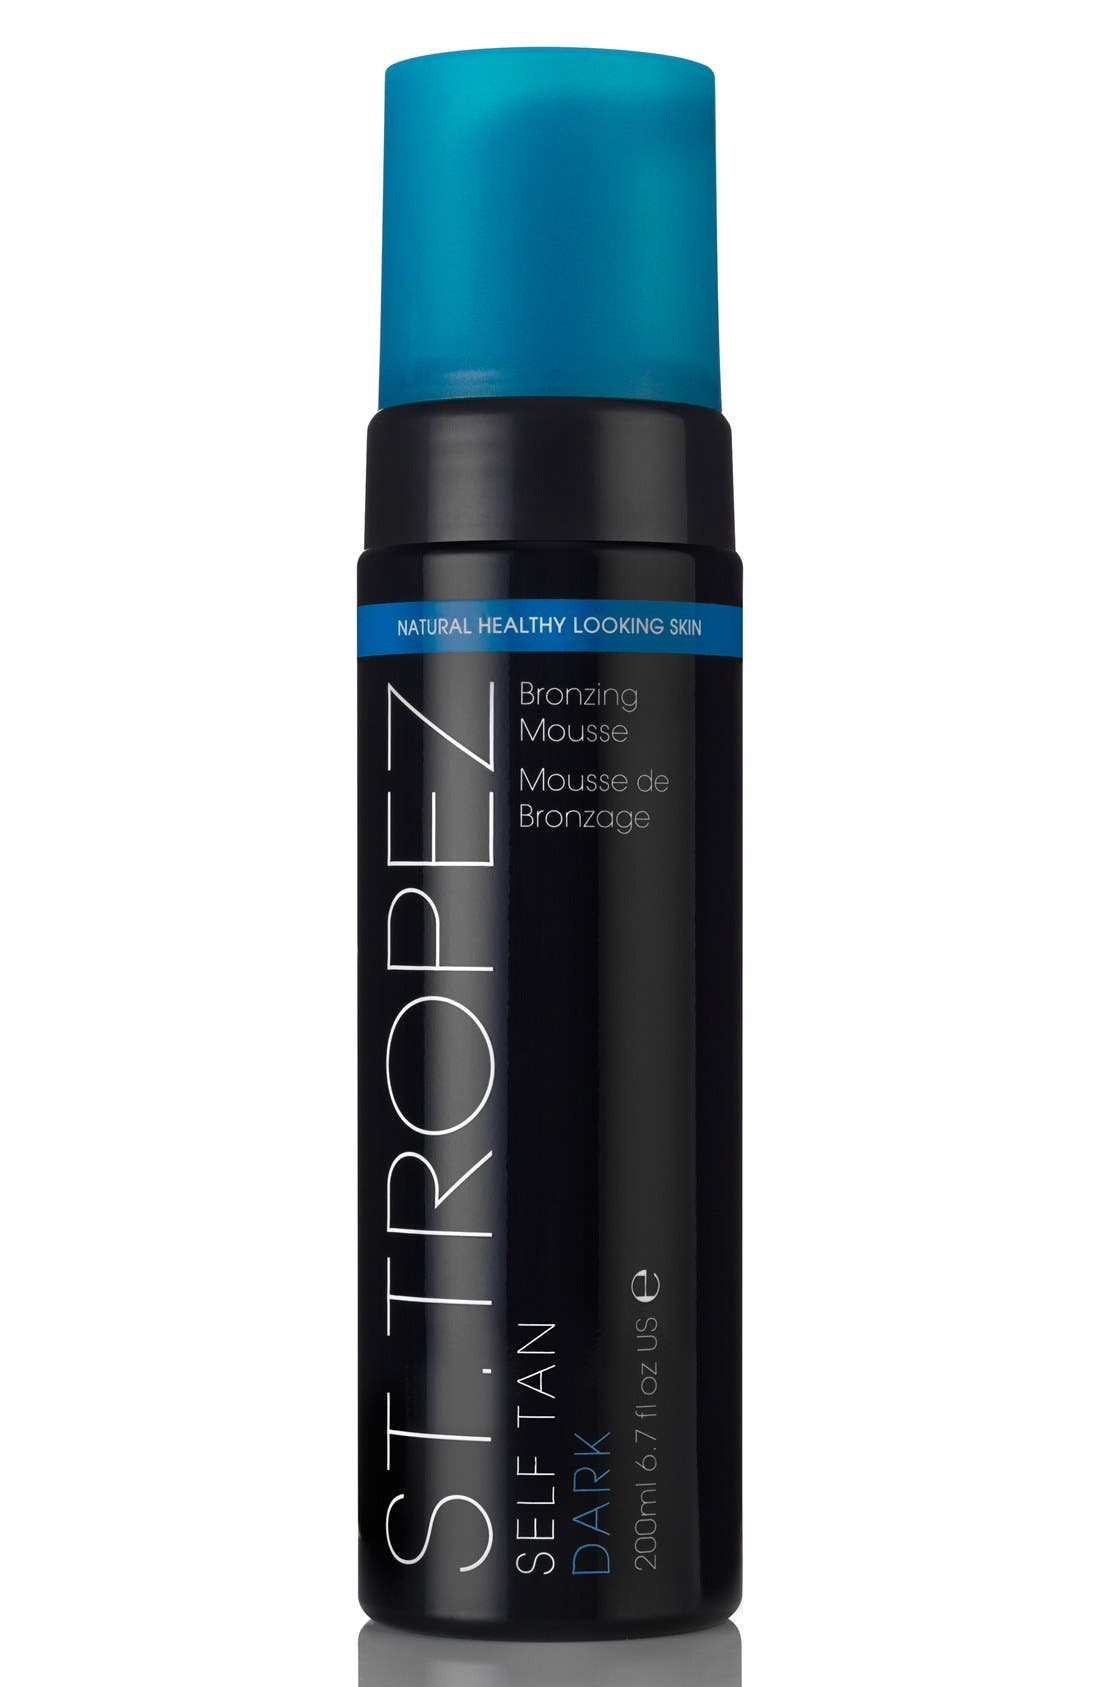 St. Tropez 'Self Tan' Dark Bronzing Mousse